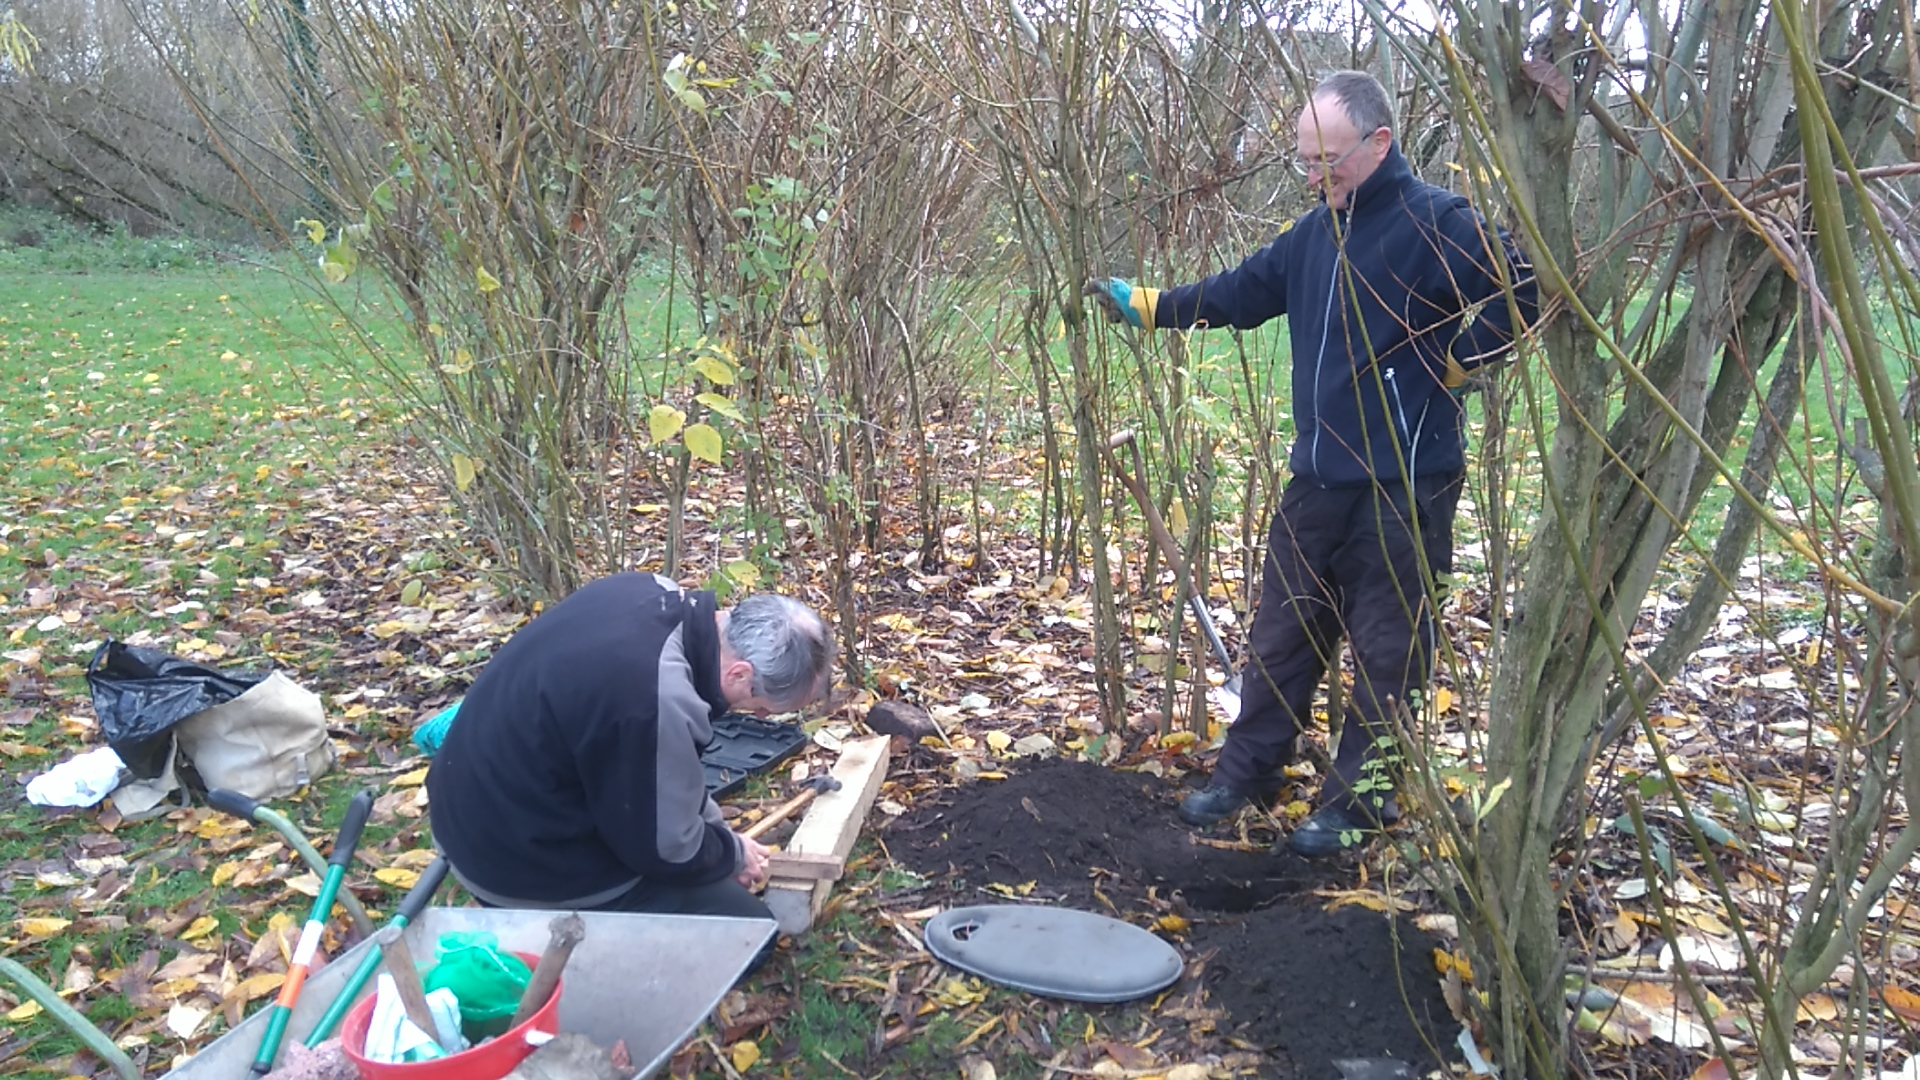 New orienteering post being prepared for Prince's Park